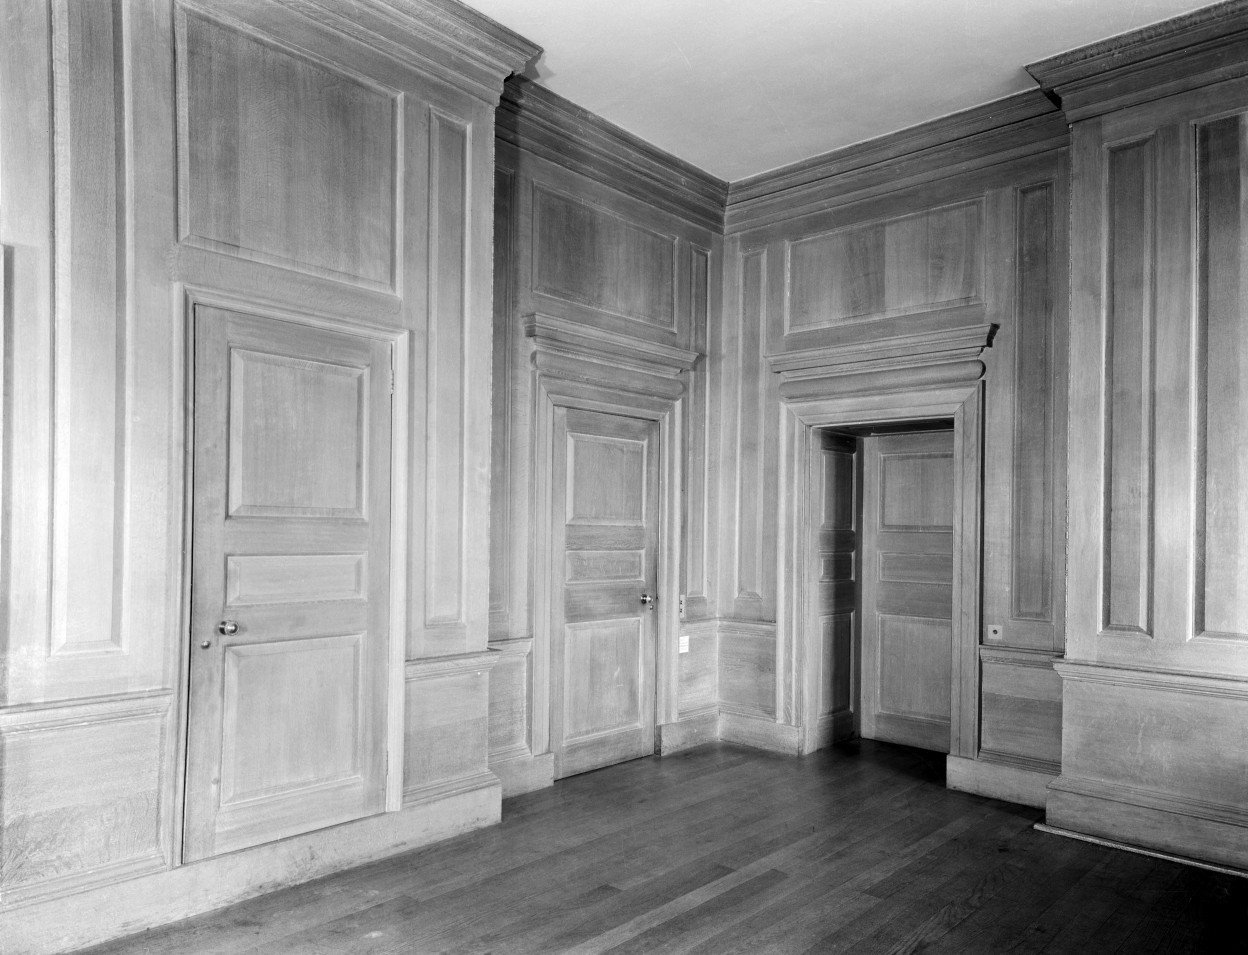 A panelled room at Middleton Park. The house was designed by Sir Edwin Lutyens and his son Robert Lutyens in 1938 for the 9th Earl of Jersey. Not Used CL 12/07/1946